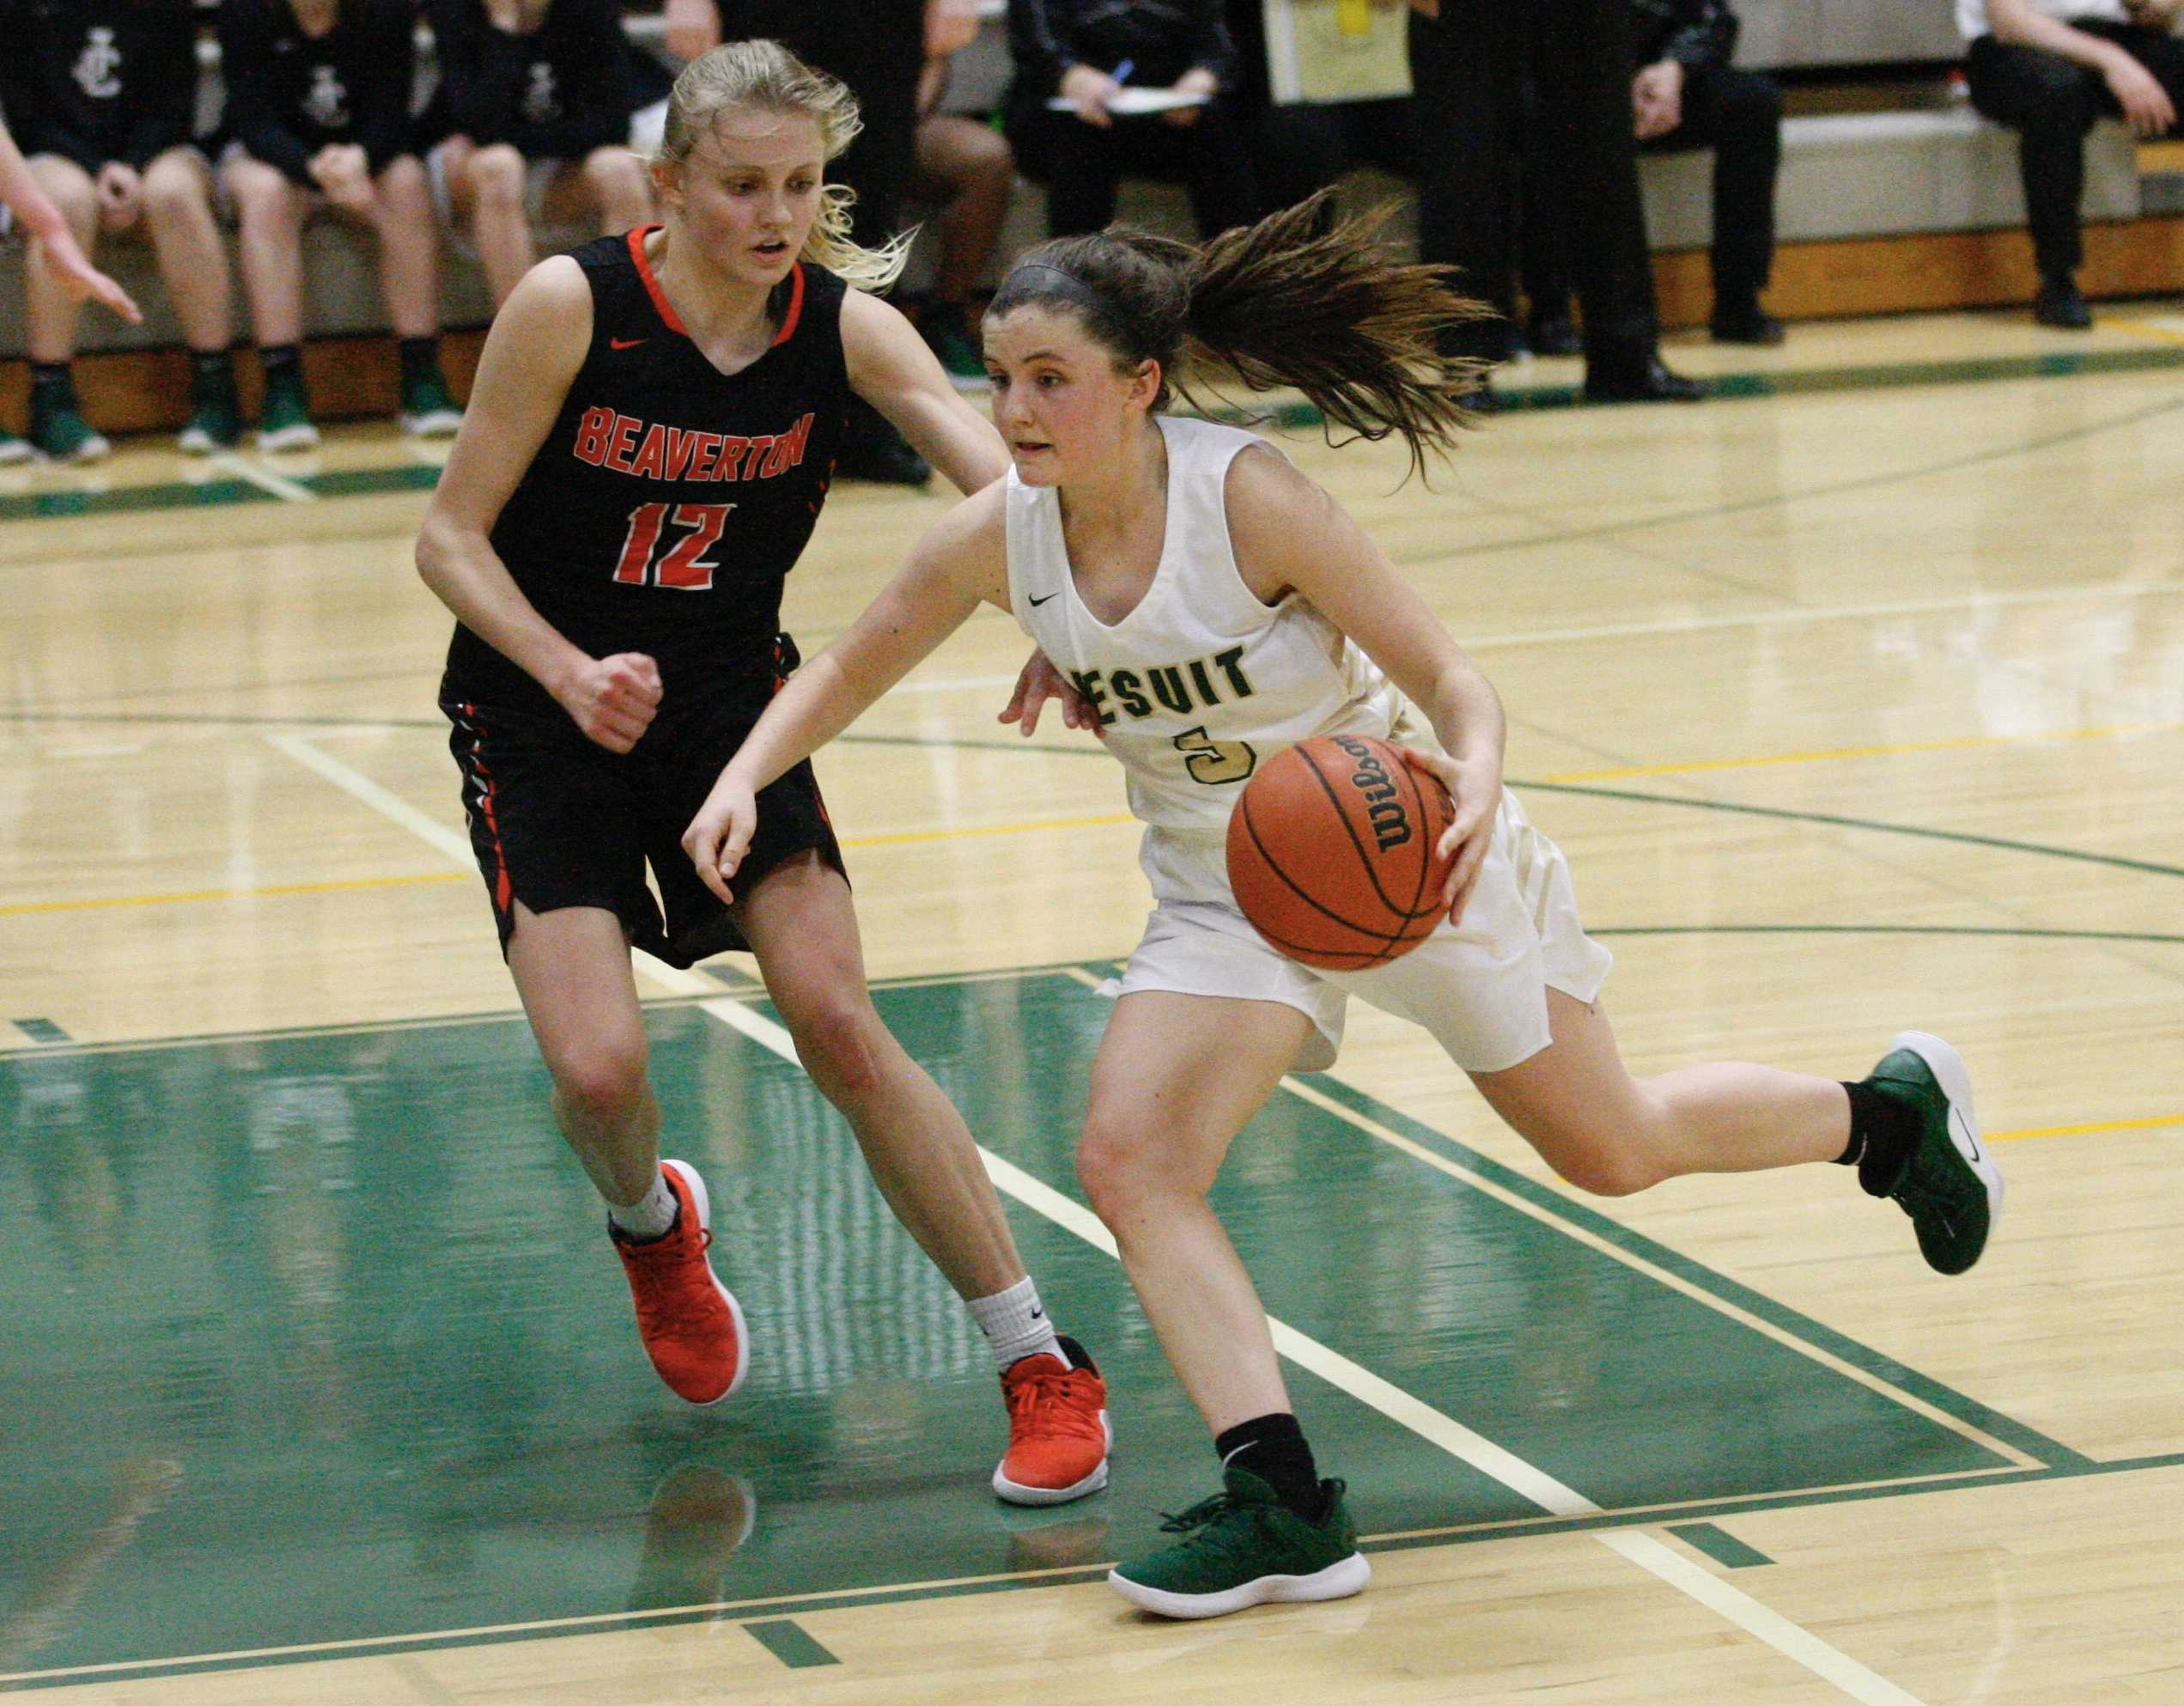 Jesuit guard Anna Fanelli drives on Beaverton's Mary Kay Naro on Wednesday night. (Photo by Norm Maves Jr.0